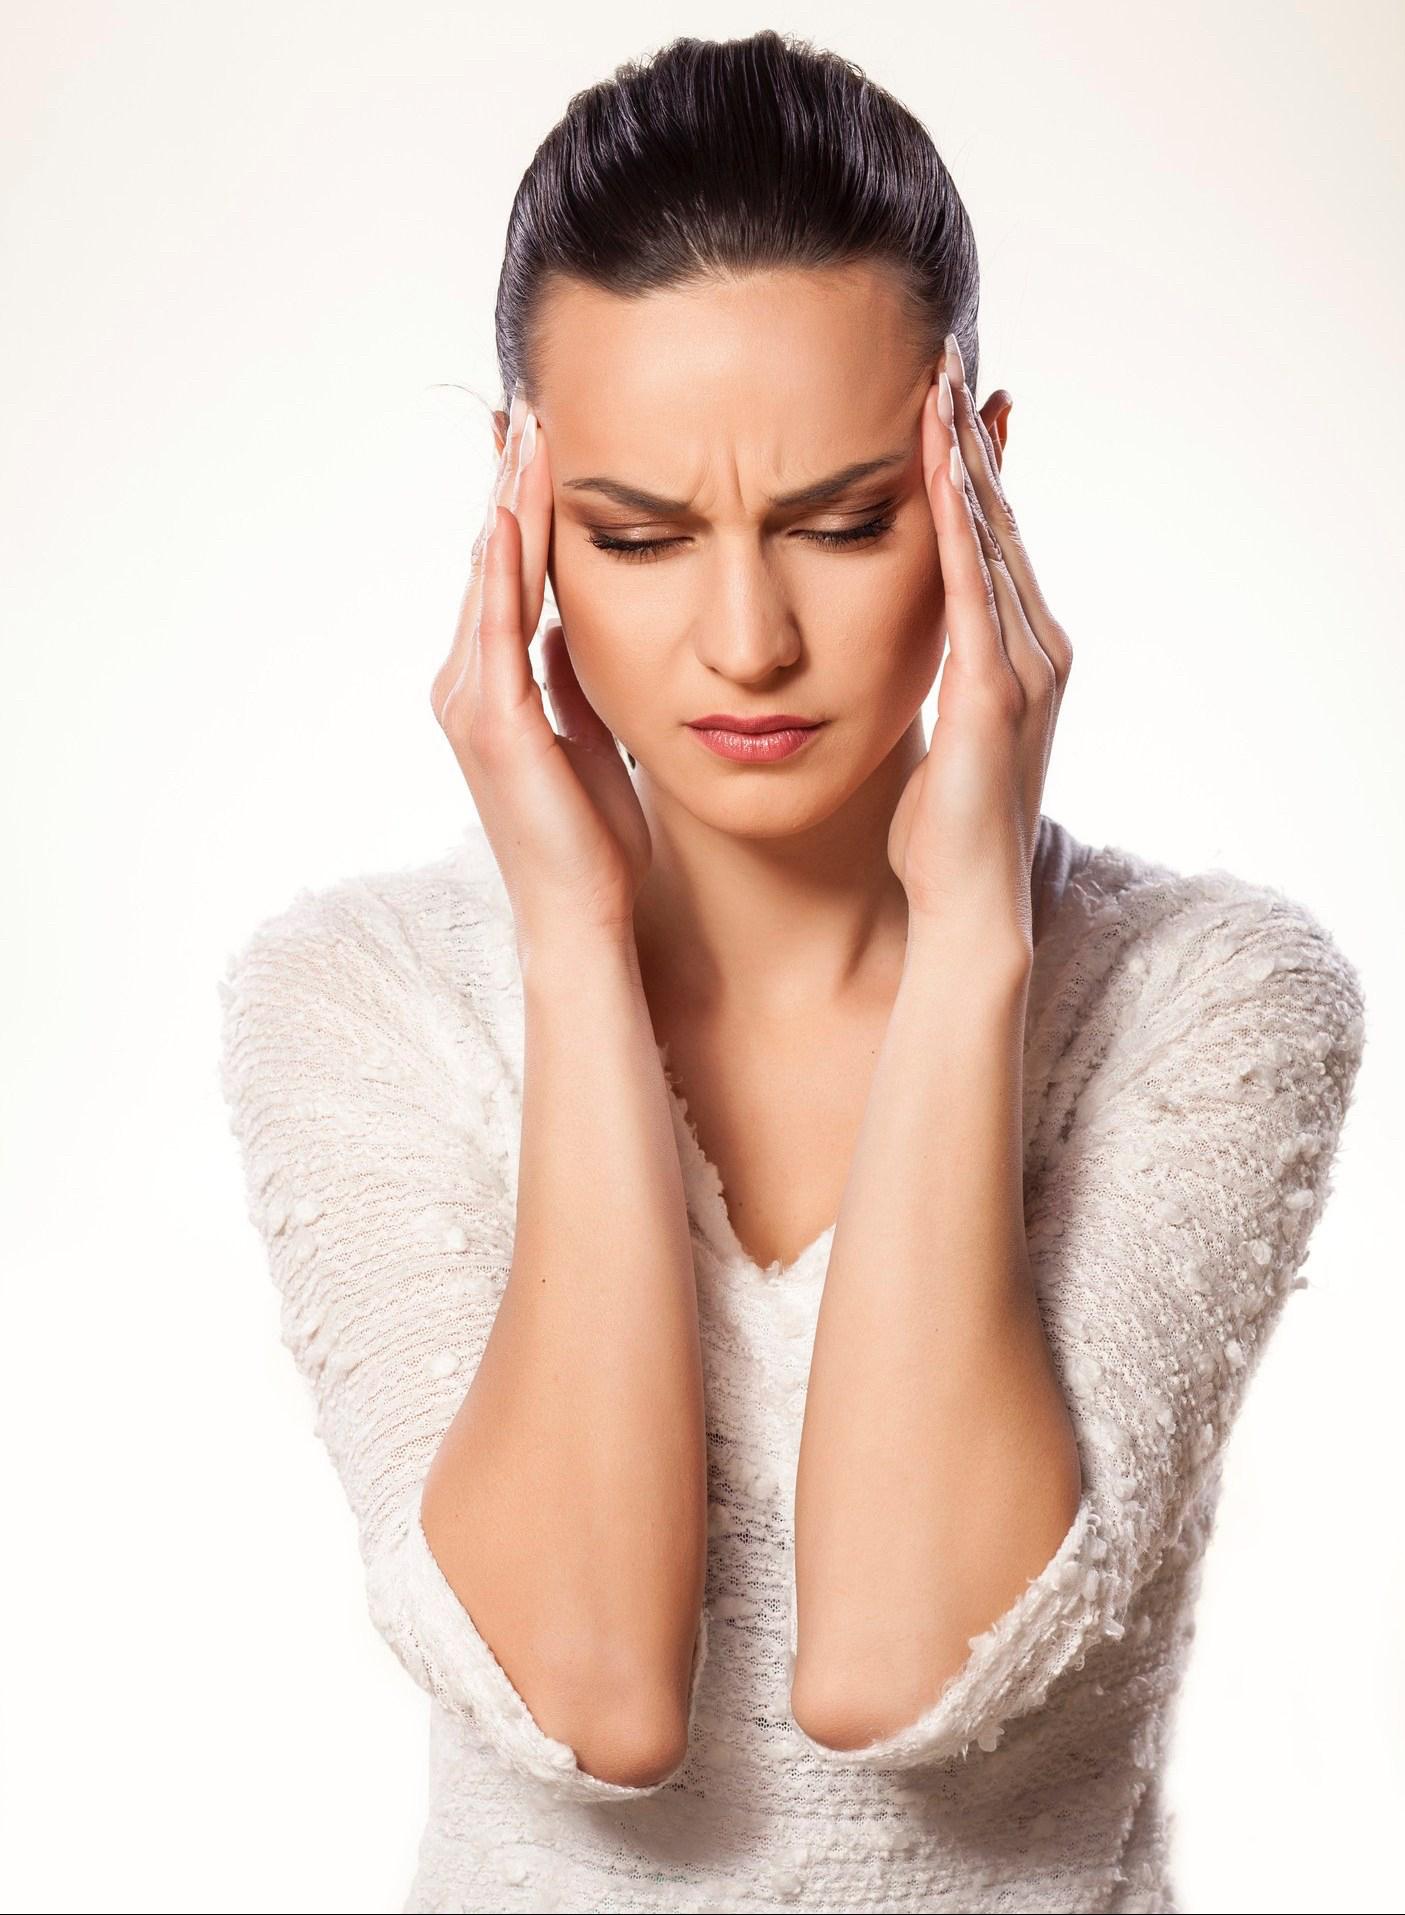 Woman with migraine image for acupuncture therapy in Edmonton for tension and migraine headaches.